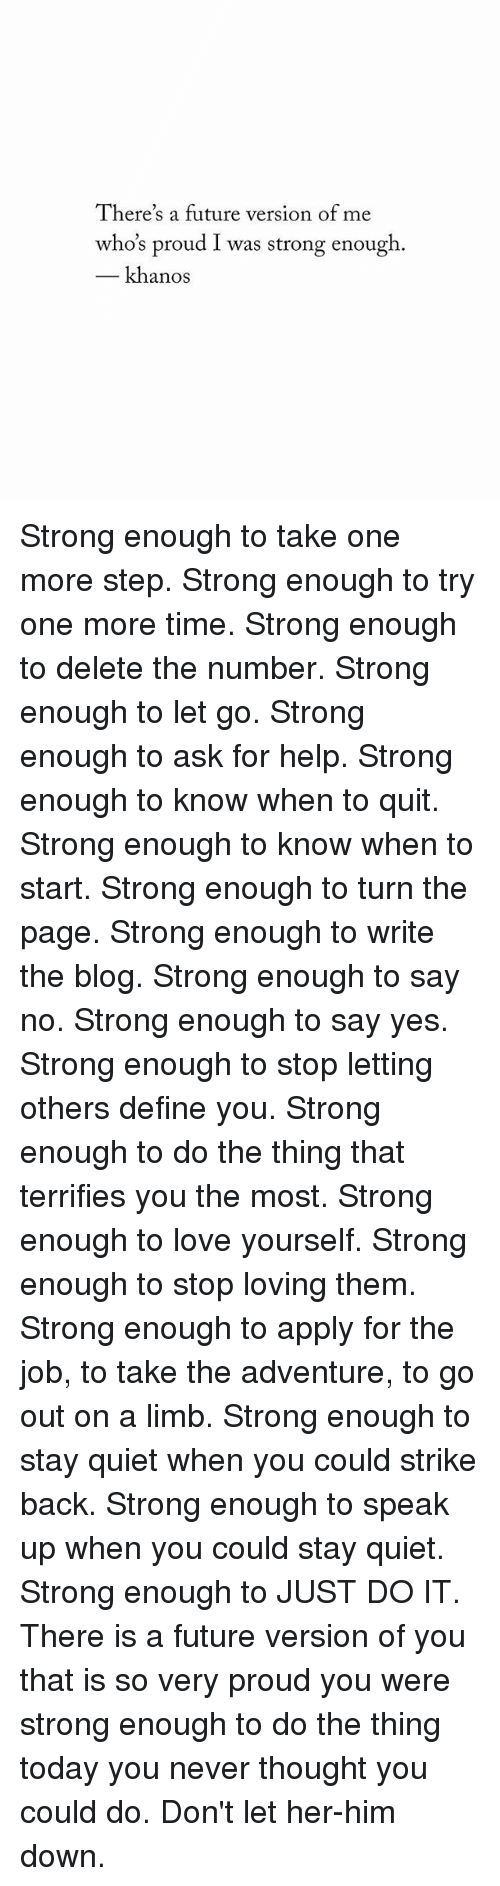 turn the page: There's a future version of me  who's proud I was strong enough.  khanos Strong enough to take one more step. Strong enough to try one more time. Strong enough to delete the number. Strong enough to let go. Strong enough to ask for help. Strong enough to know when to quit. Strong enough to know when to start. Strong enough to turn the page. Strong enough to write the blog. Strong enough to say no. Strong enough to say yes. Strong enough to stop letting others define you. Strong enough to do the thing that terrifies you the most. Strong enough to love yourself. Strong enough to stop loving them. Strong enough to apply for the job, to take the adventure, to go out on a limb. Strong enough to stay quiet when you could strike back. Strong enough to speak up when you could stay quiet. Strong enough to JUST DO IT. There is a future version of you that is so very proud you were strong enough to do the thing today you never thought you could do. Don't let her-him down.